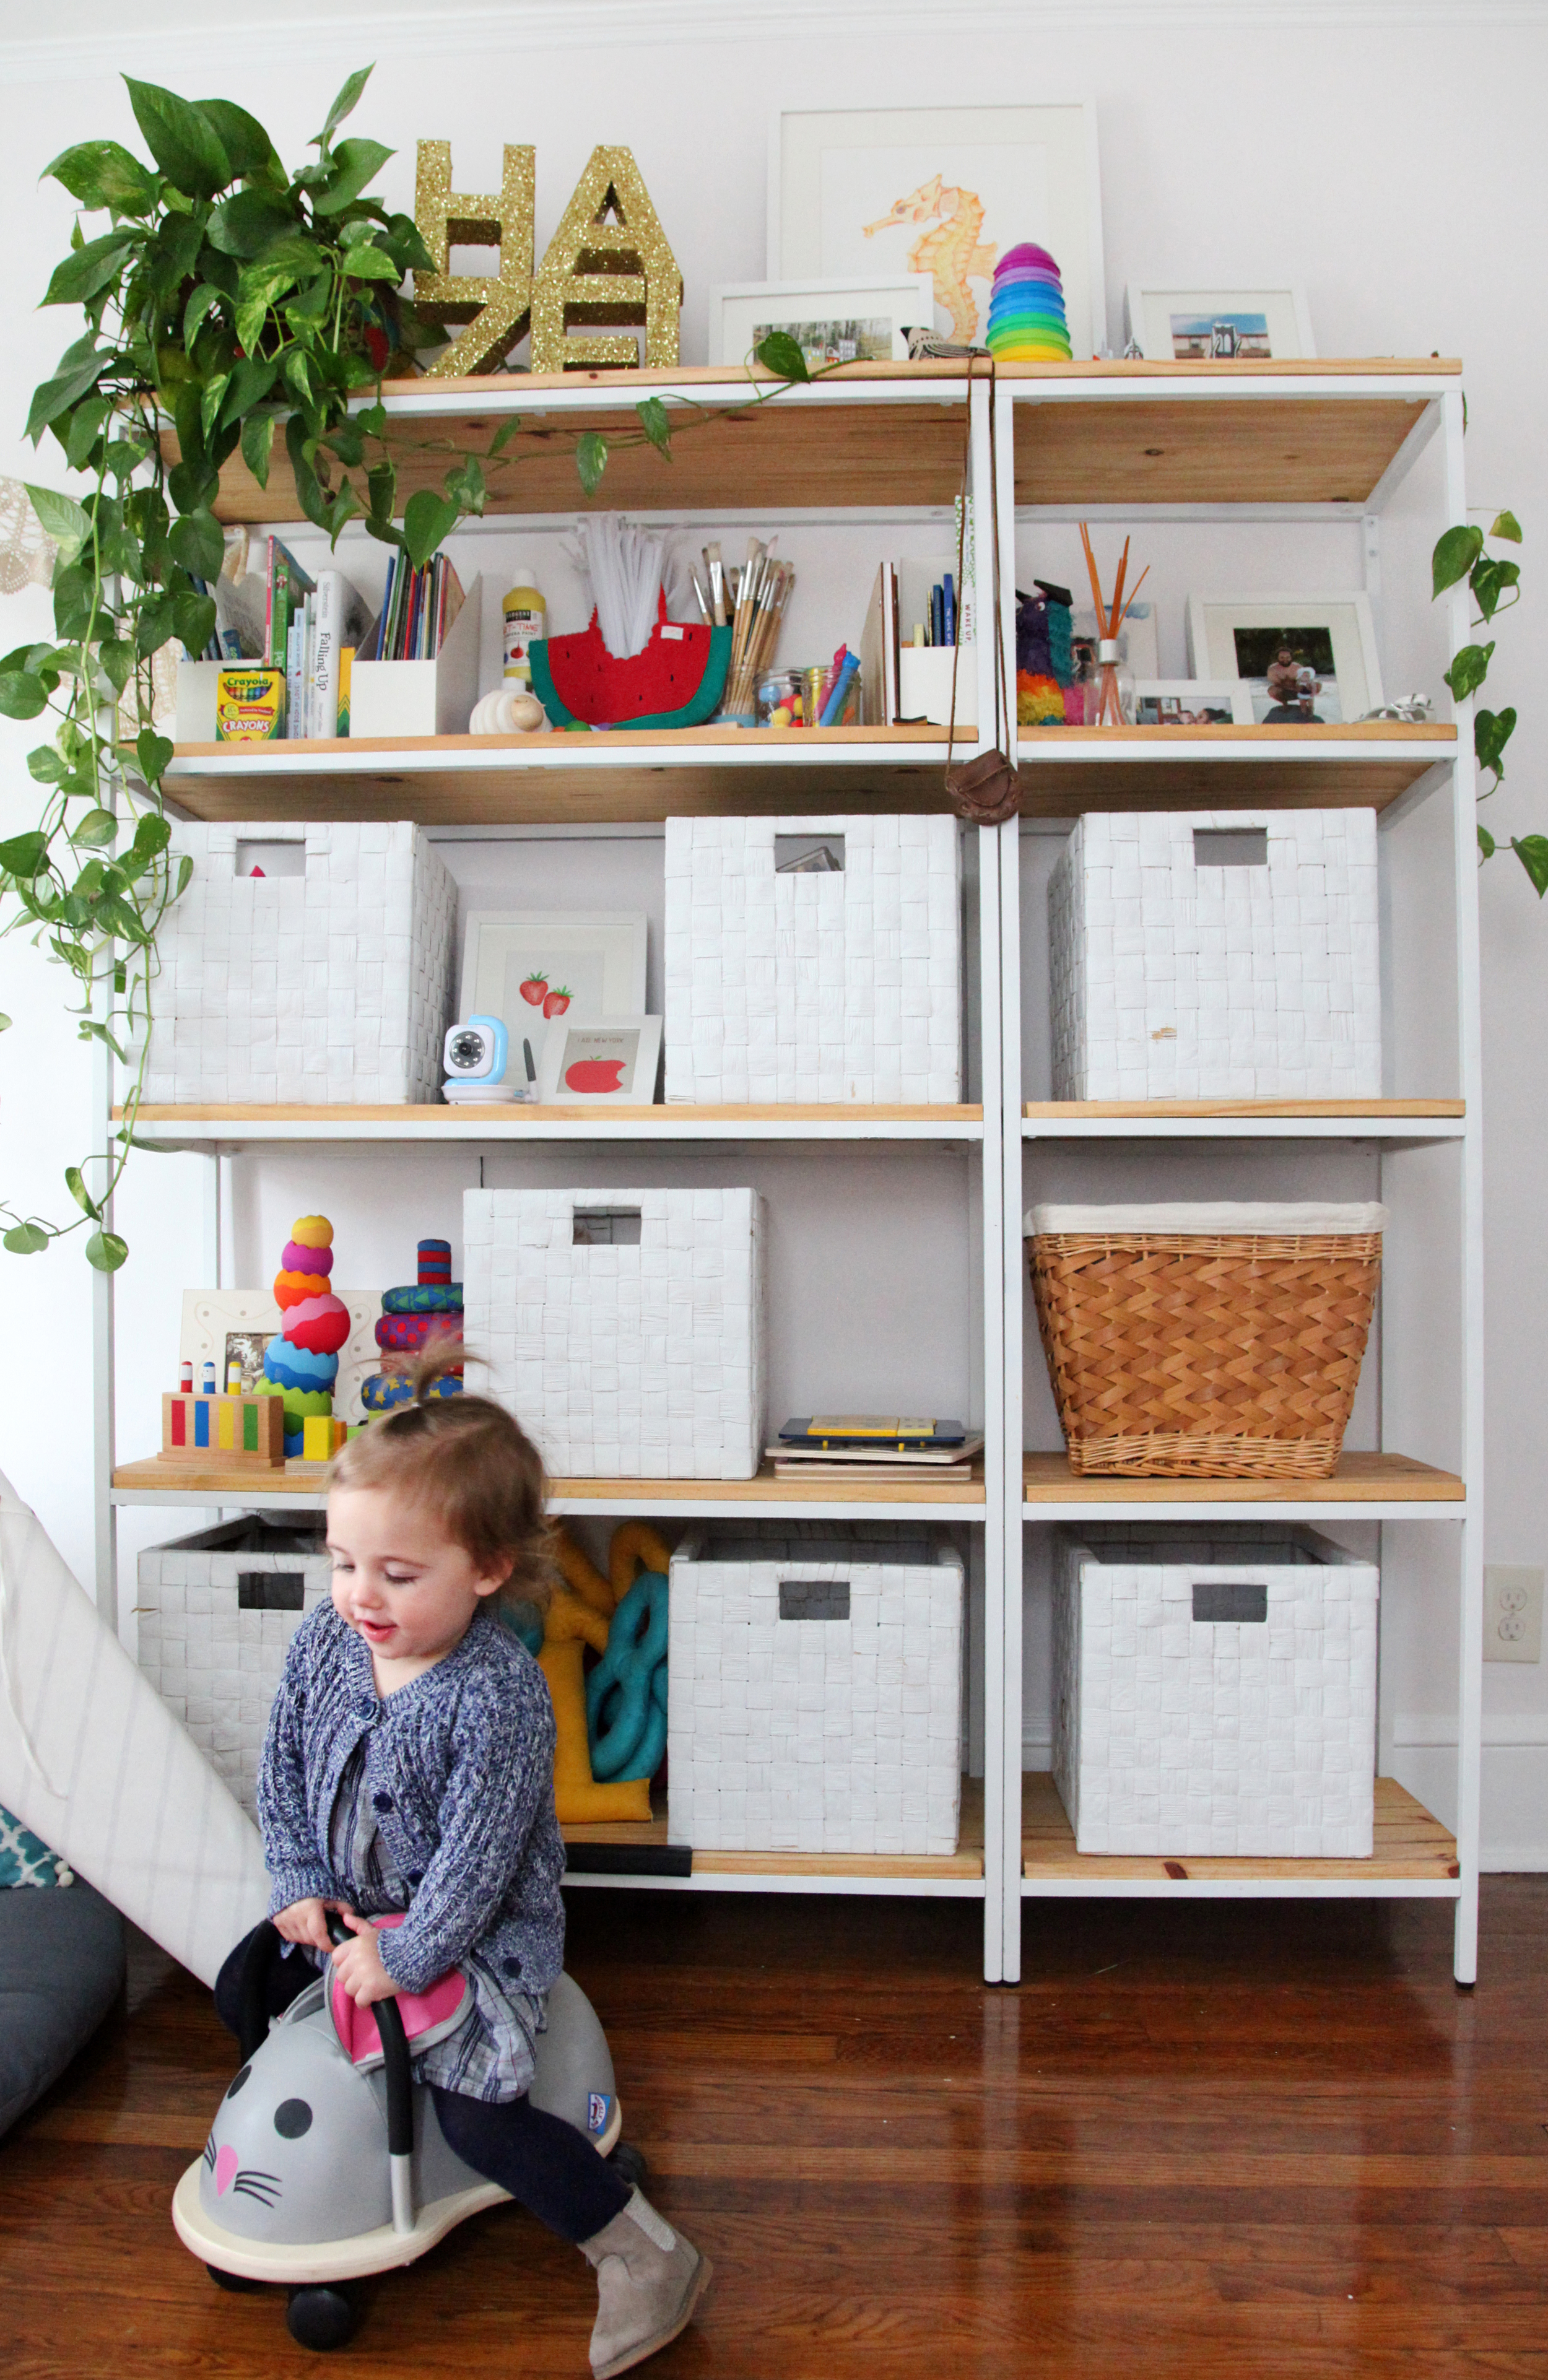 My husband, Chris and I got crafty together and made our own Ikea hack for the shelves and baskets when prepping for Hazel's arrival. I wrote about it on the blog.